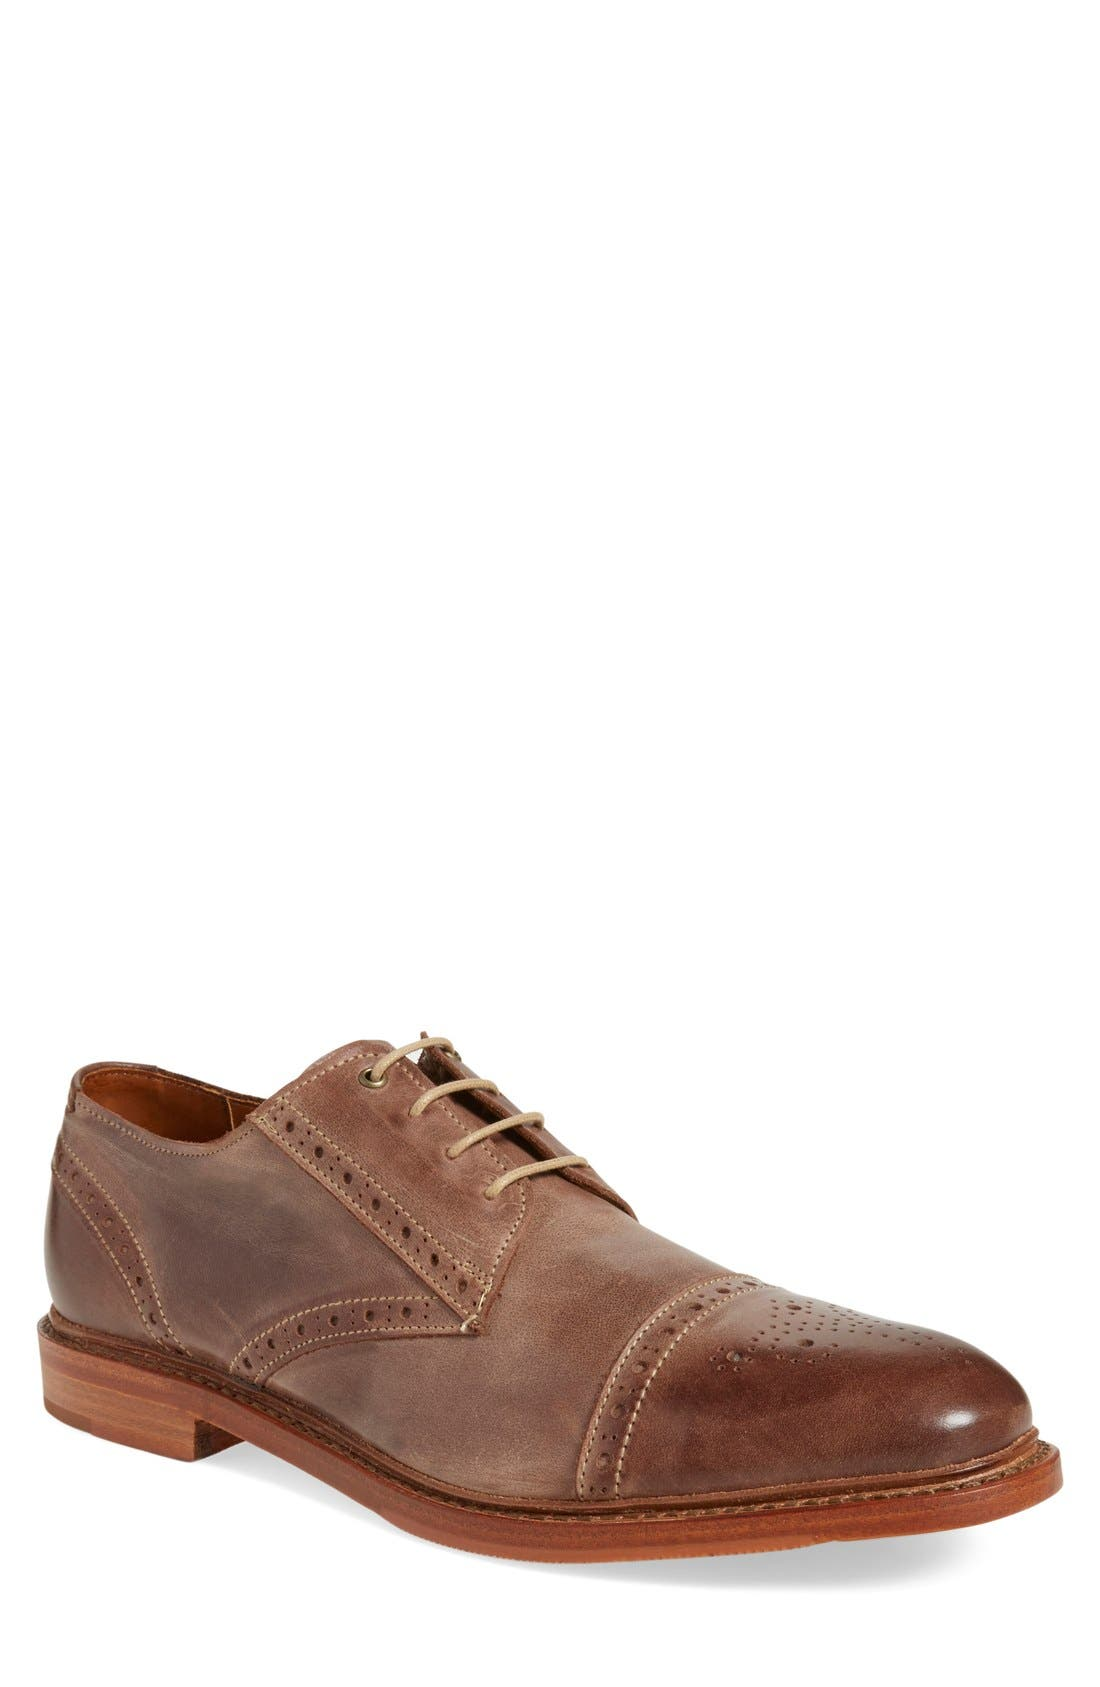 Main Image - Allen Edmonds 'Bainbridge' Cap Toe Derby (Men)